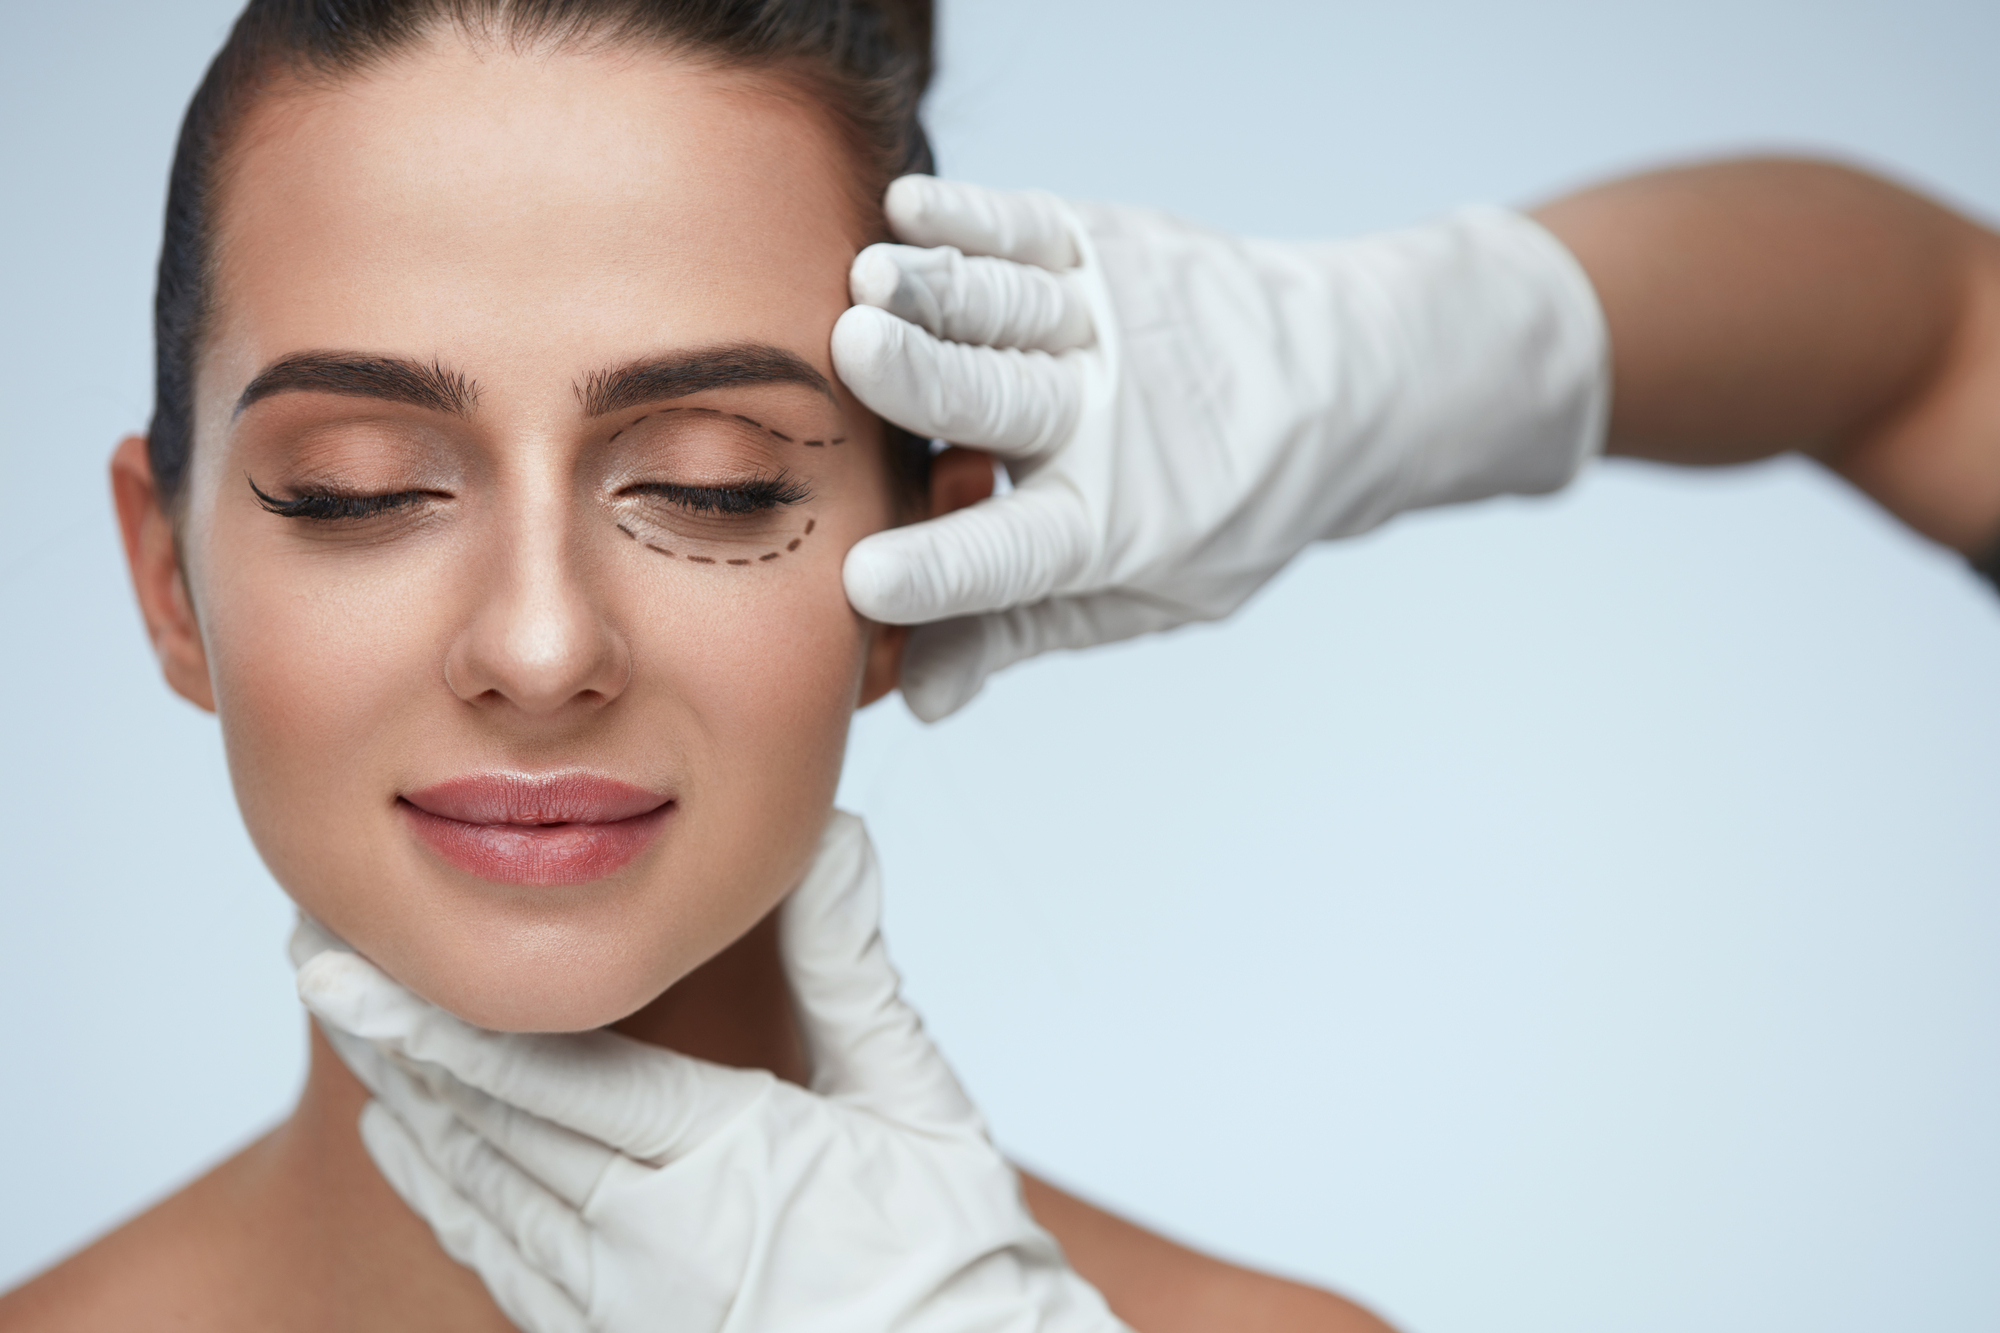 Cosmetic Surgery - Why Do People Get Cosmetic Surgery